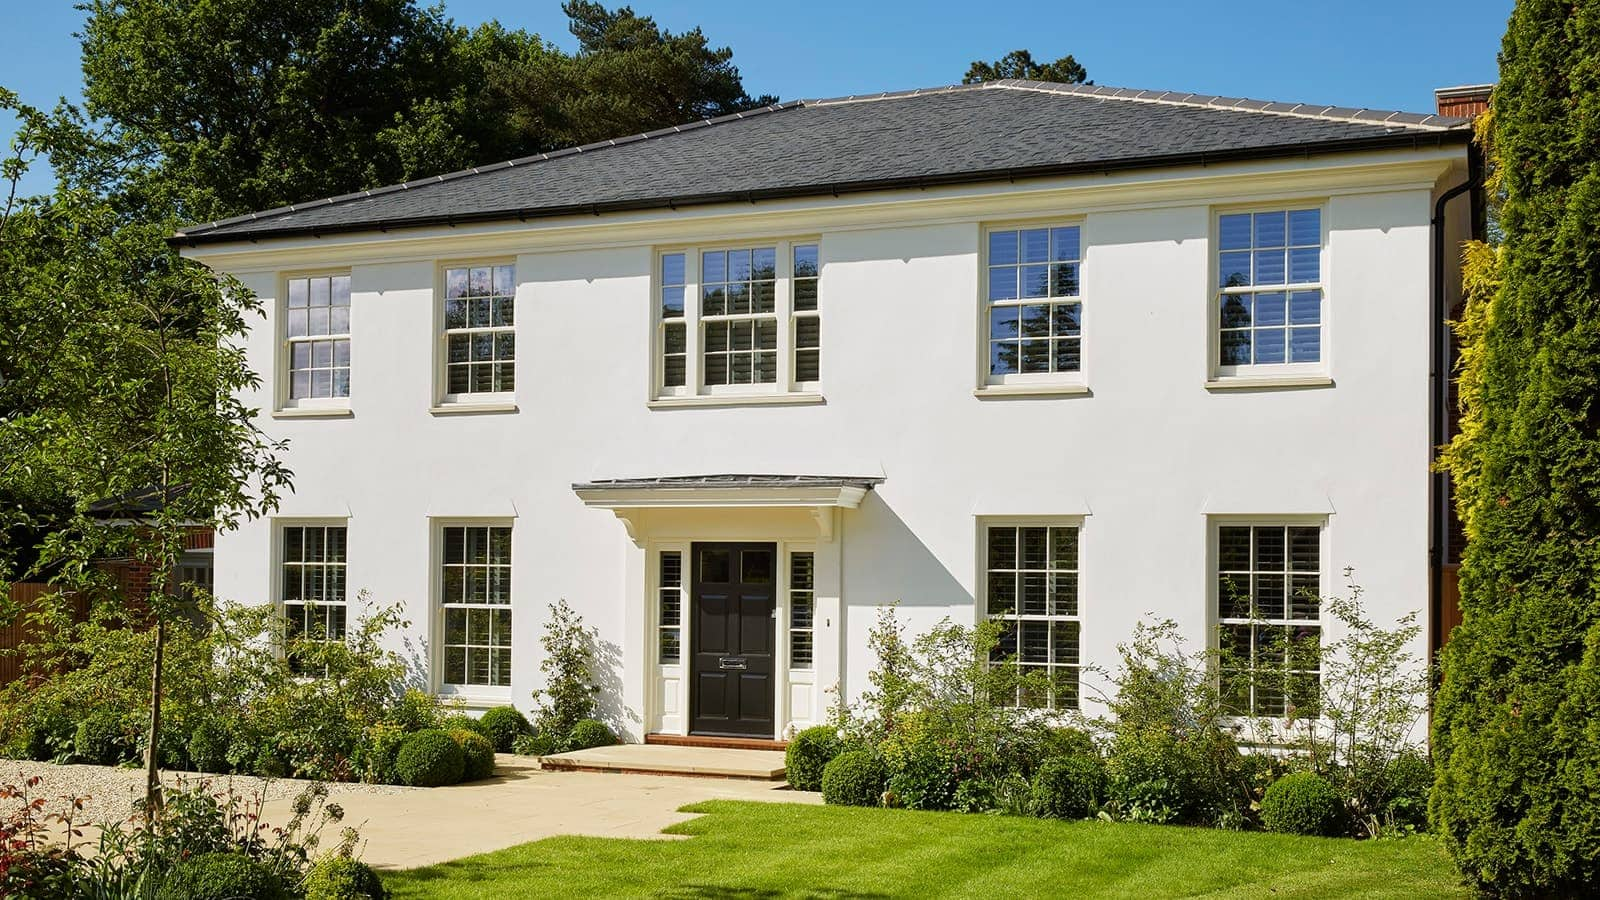 Georgian style new build property with legacy sliding sash windows